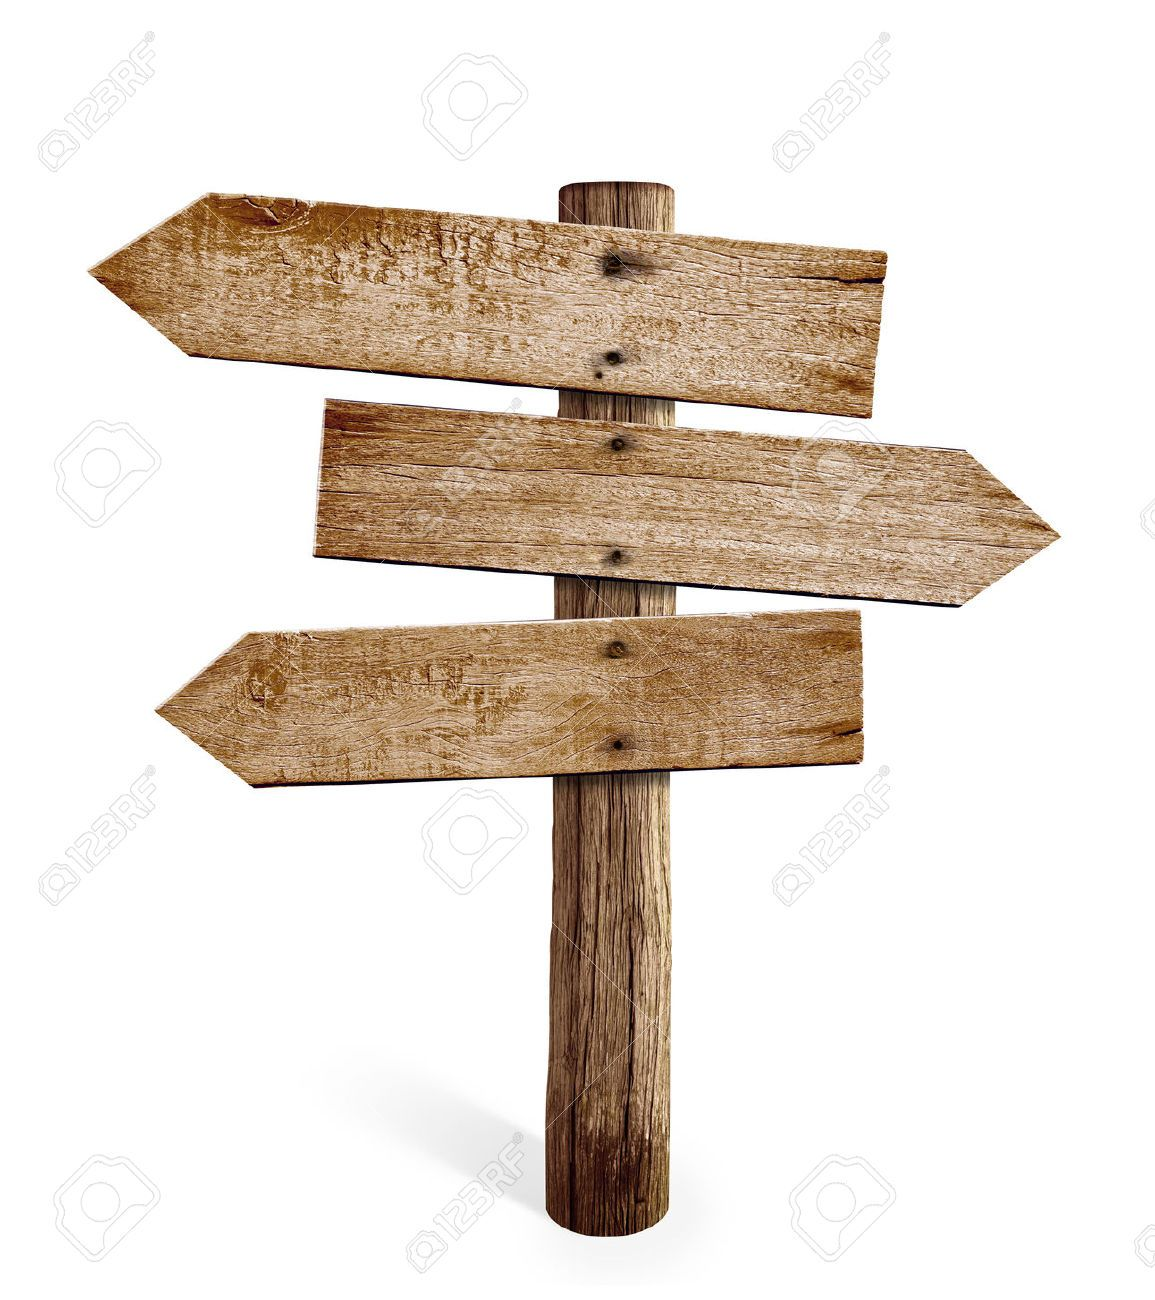 Wooden Arrow Sign Post Or Road Signpost Isolated Wooden Arrow Sign Wooden Arrows Wooden Signs